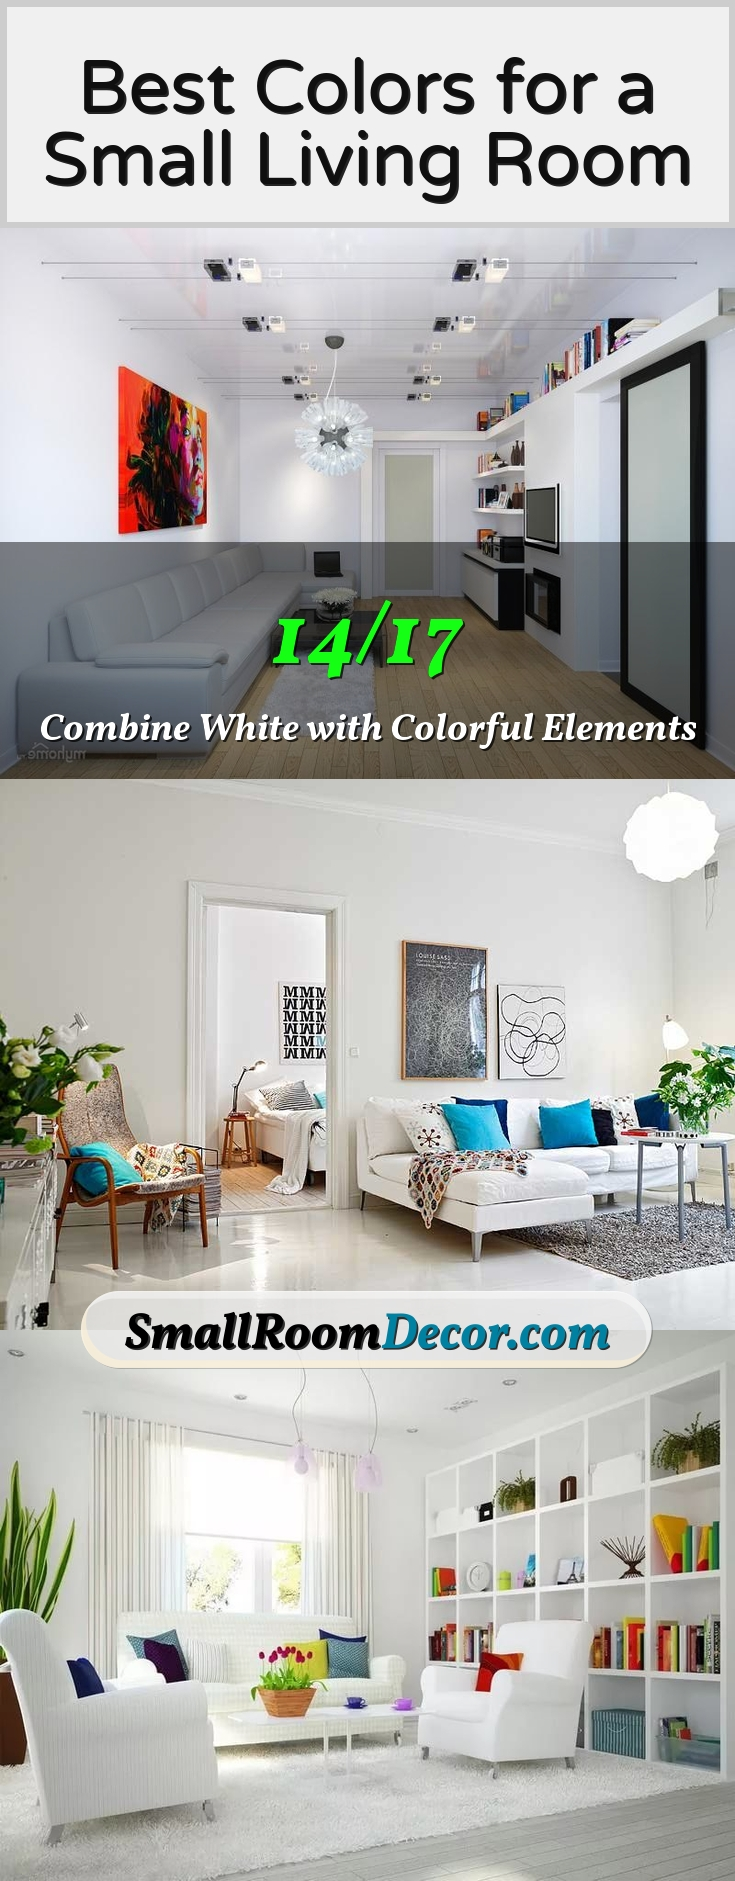 white and intense colors in living room #livingroompaintcolors